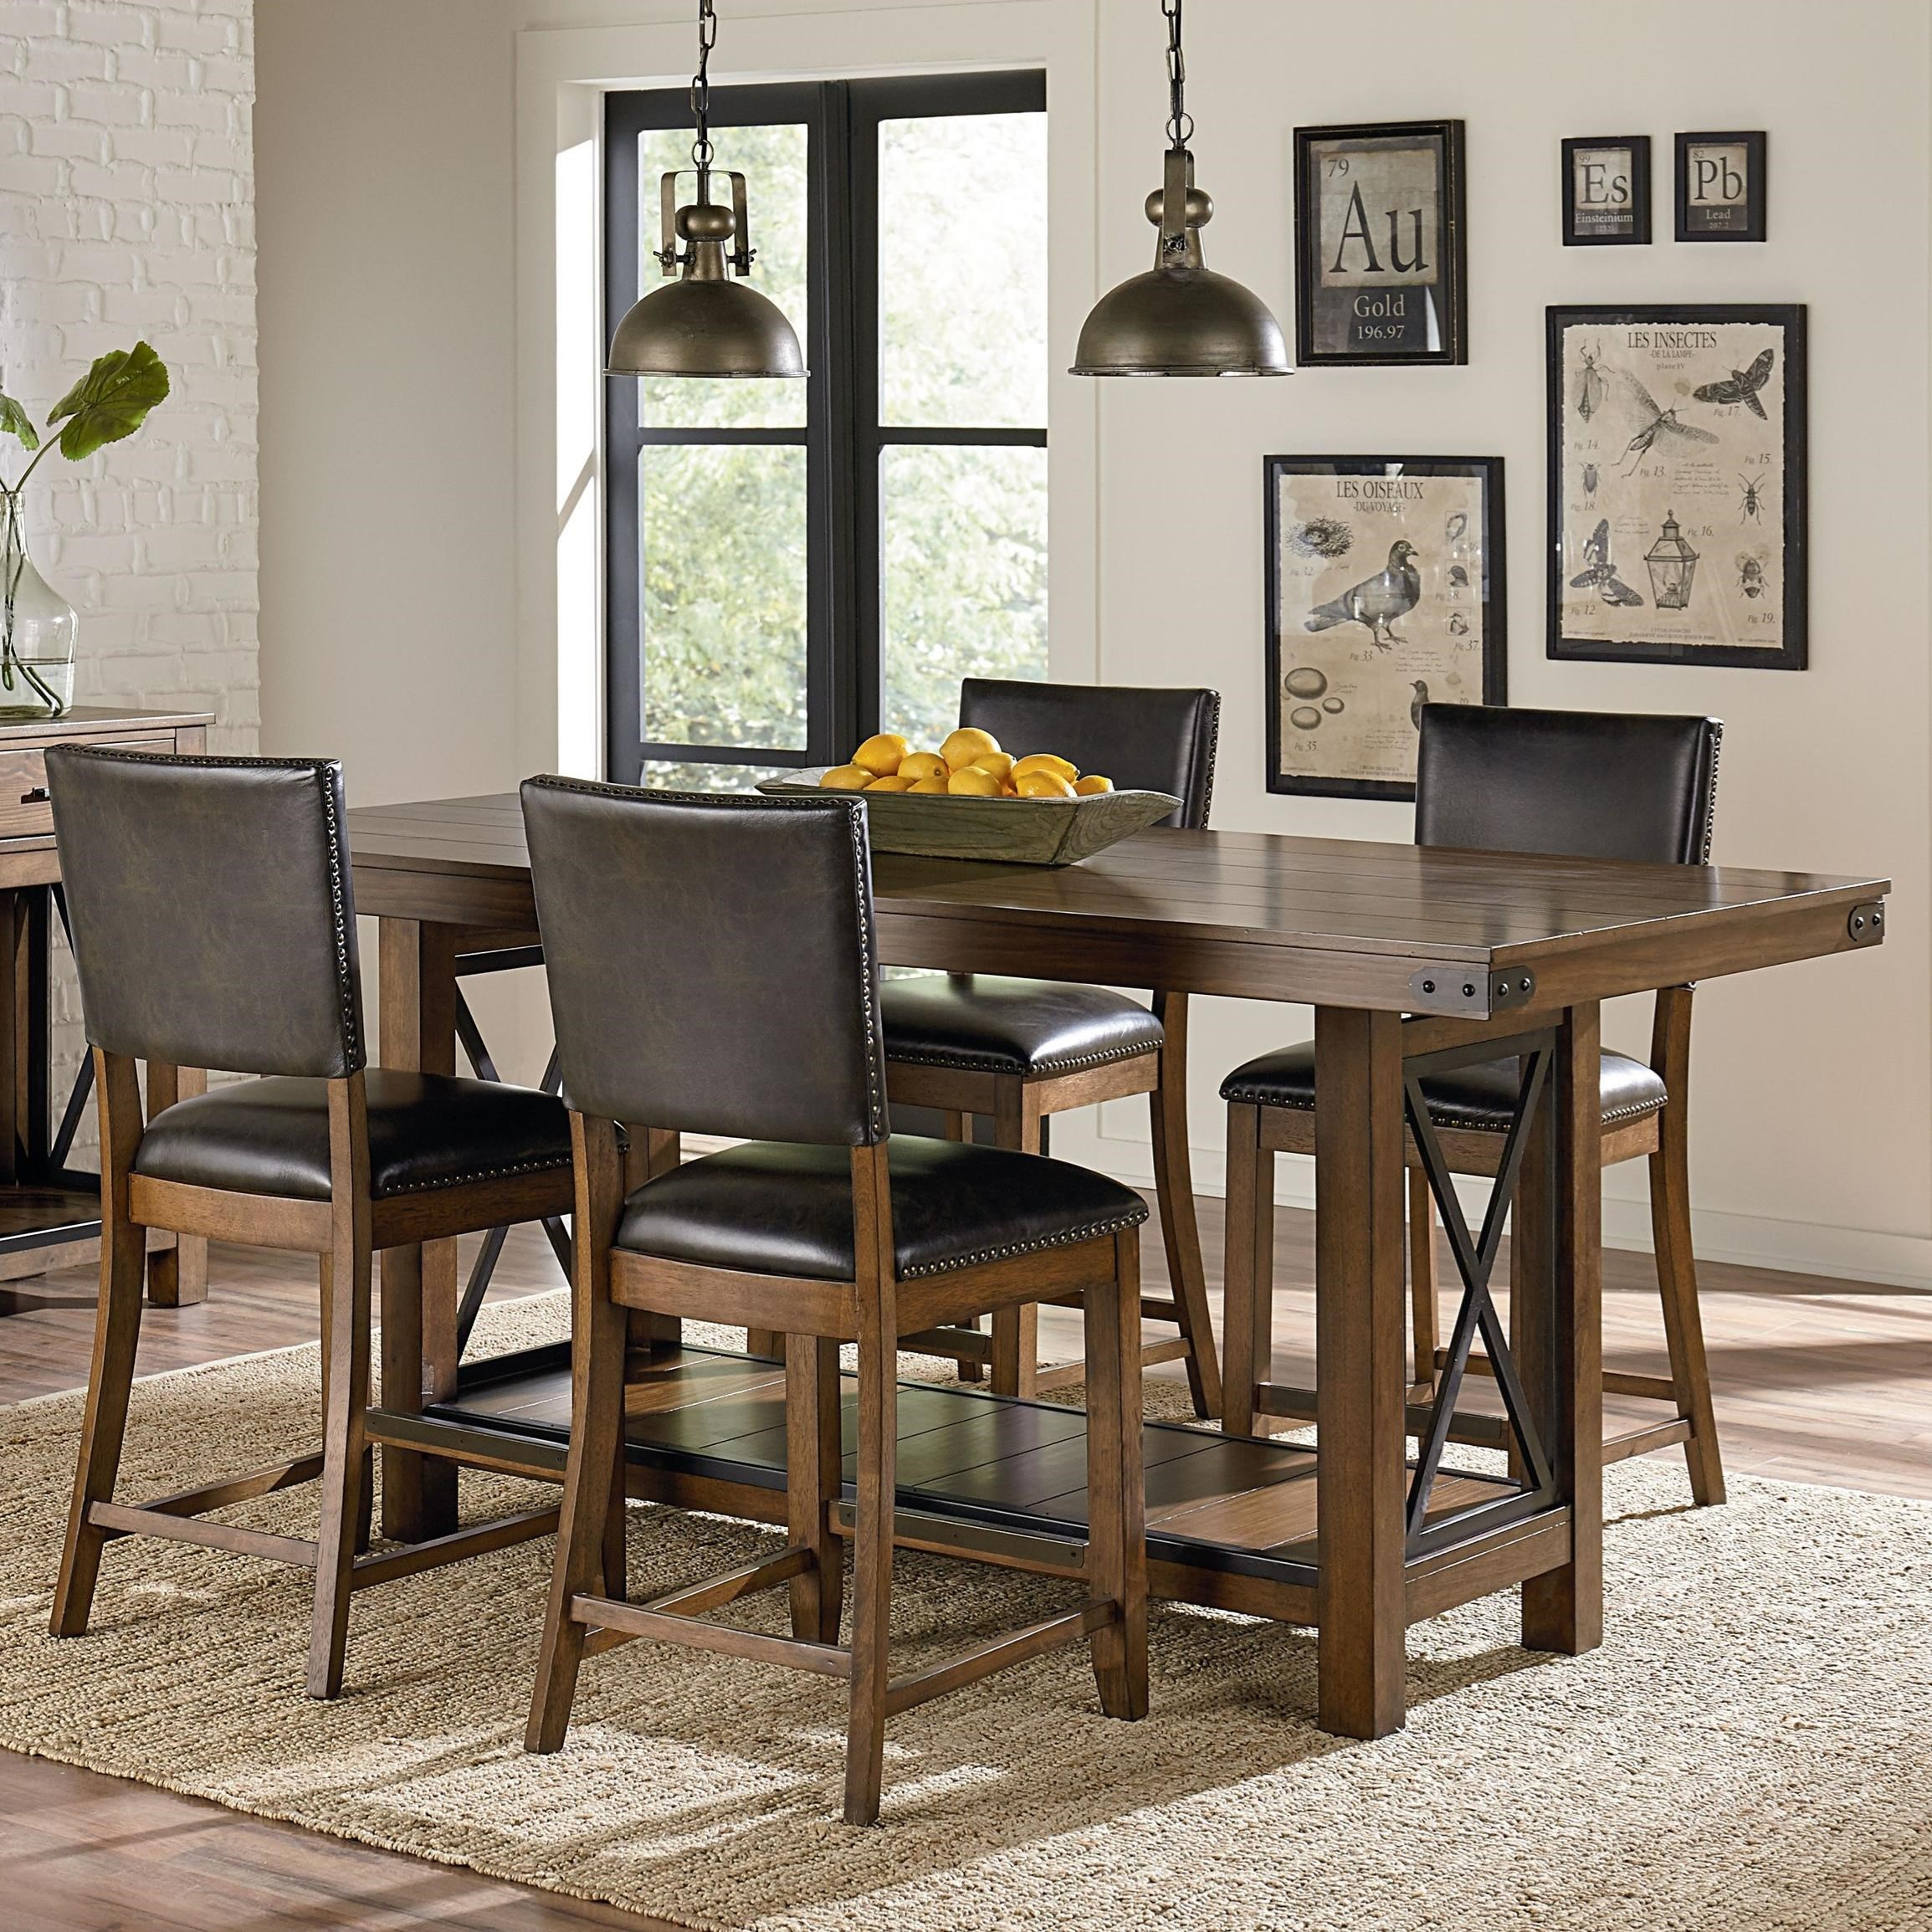 Standard Furniture Benson Table and Chair Set - Item Number: 11536+4x11537